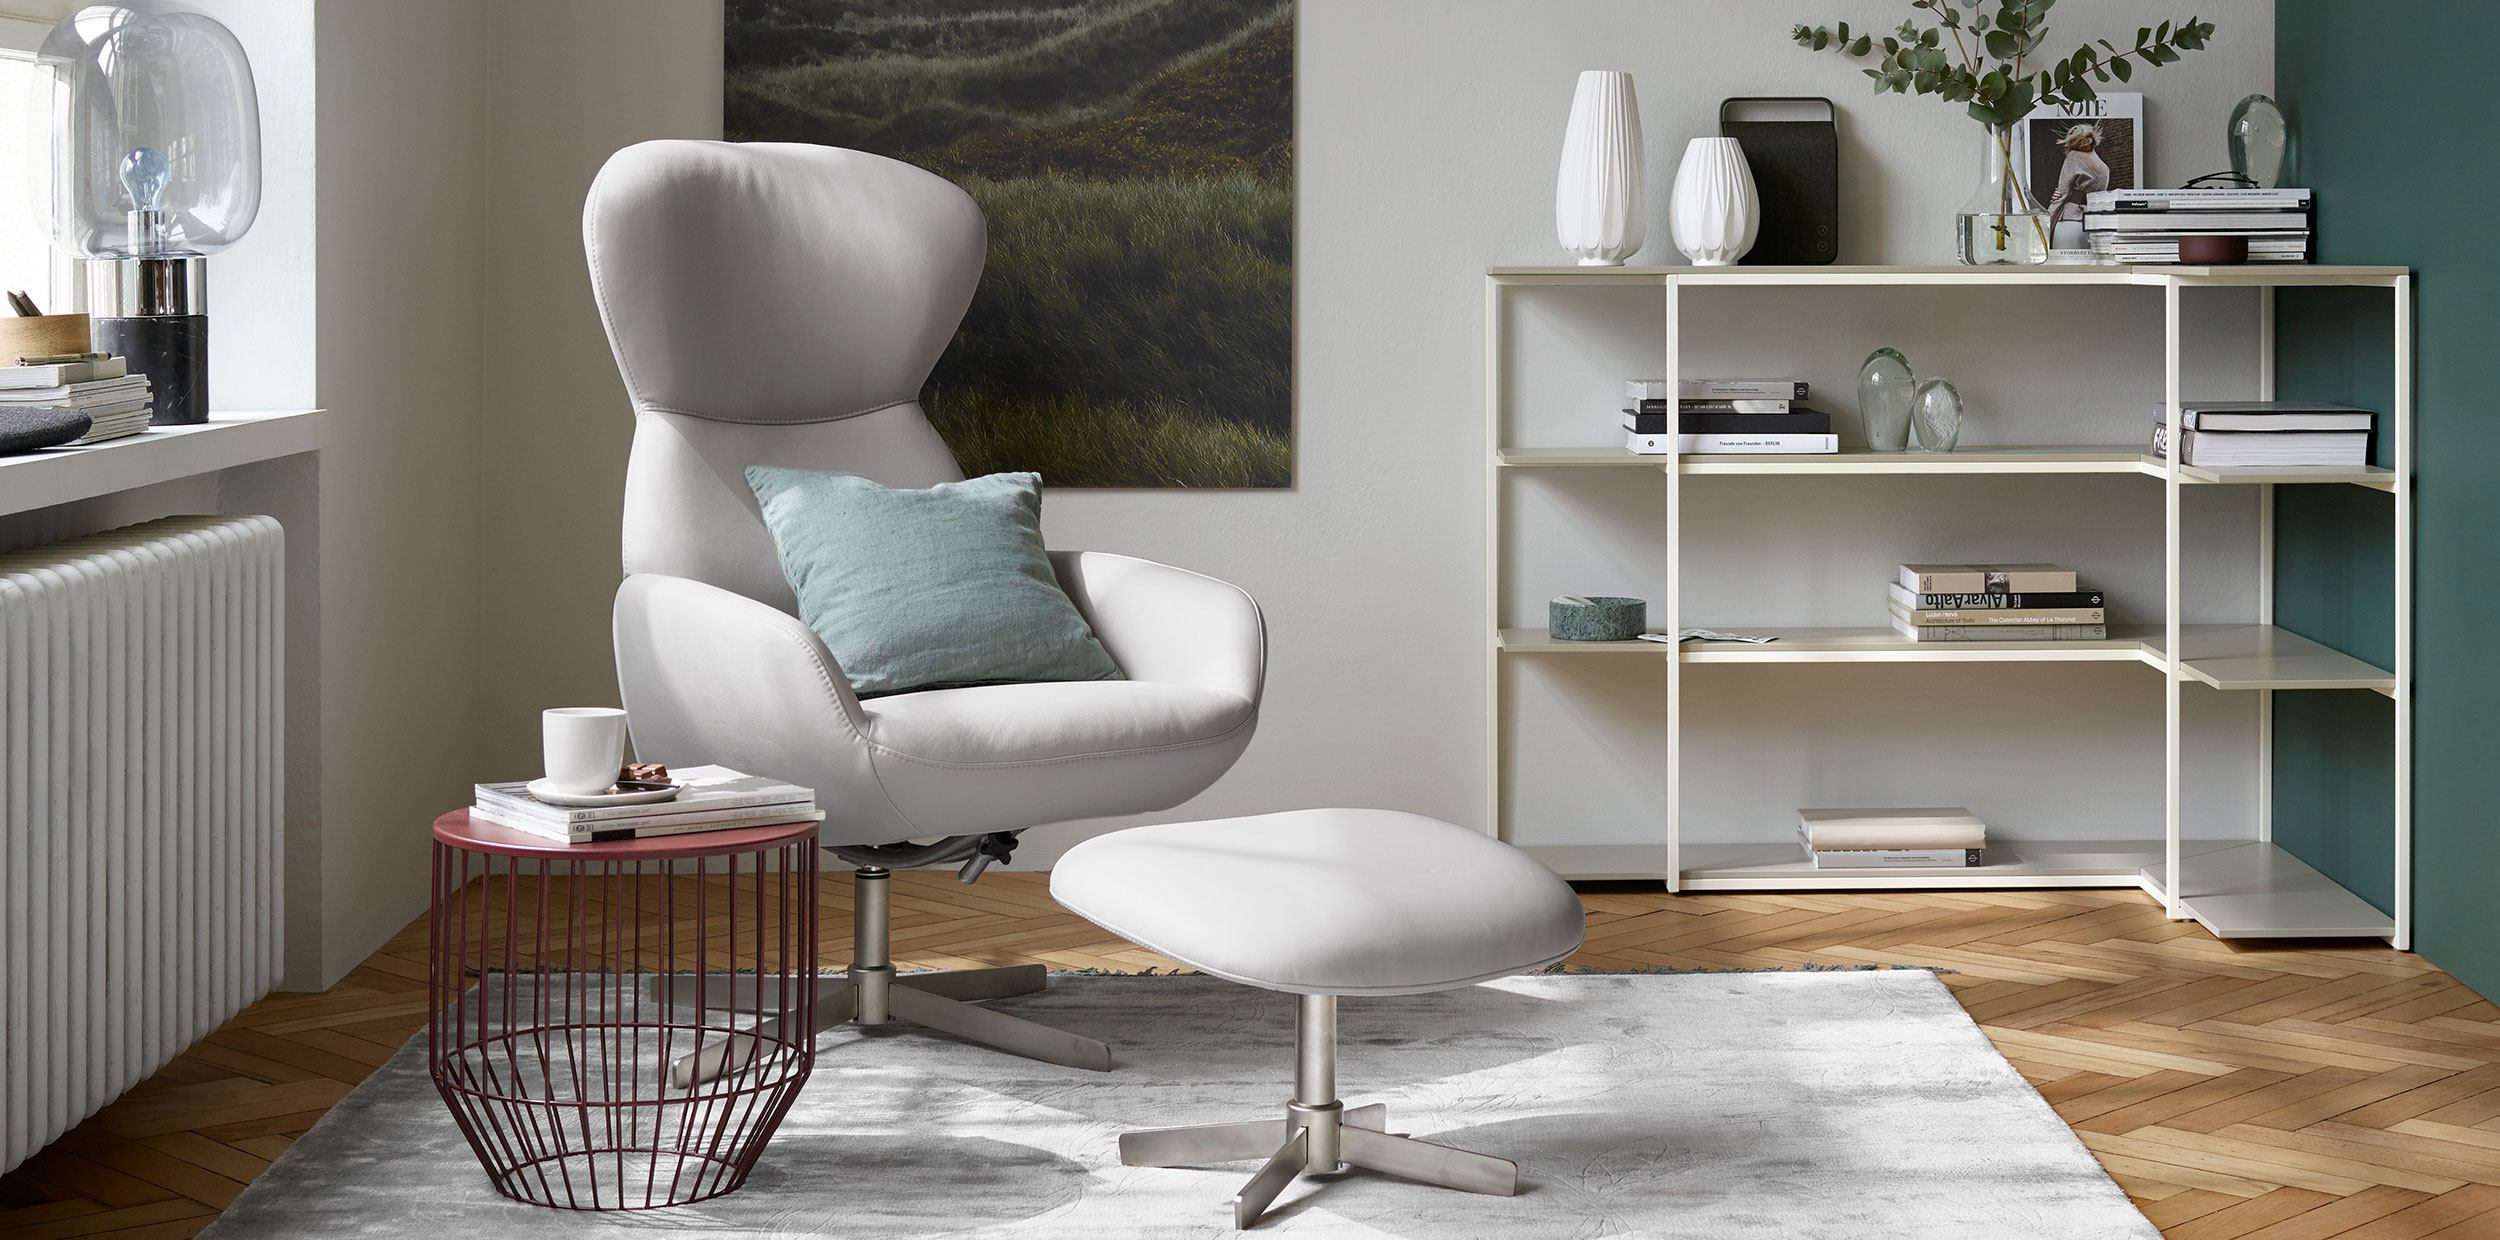 Athena chair and footstool in light fabrics with white corner bookcase